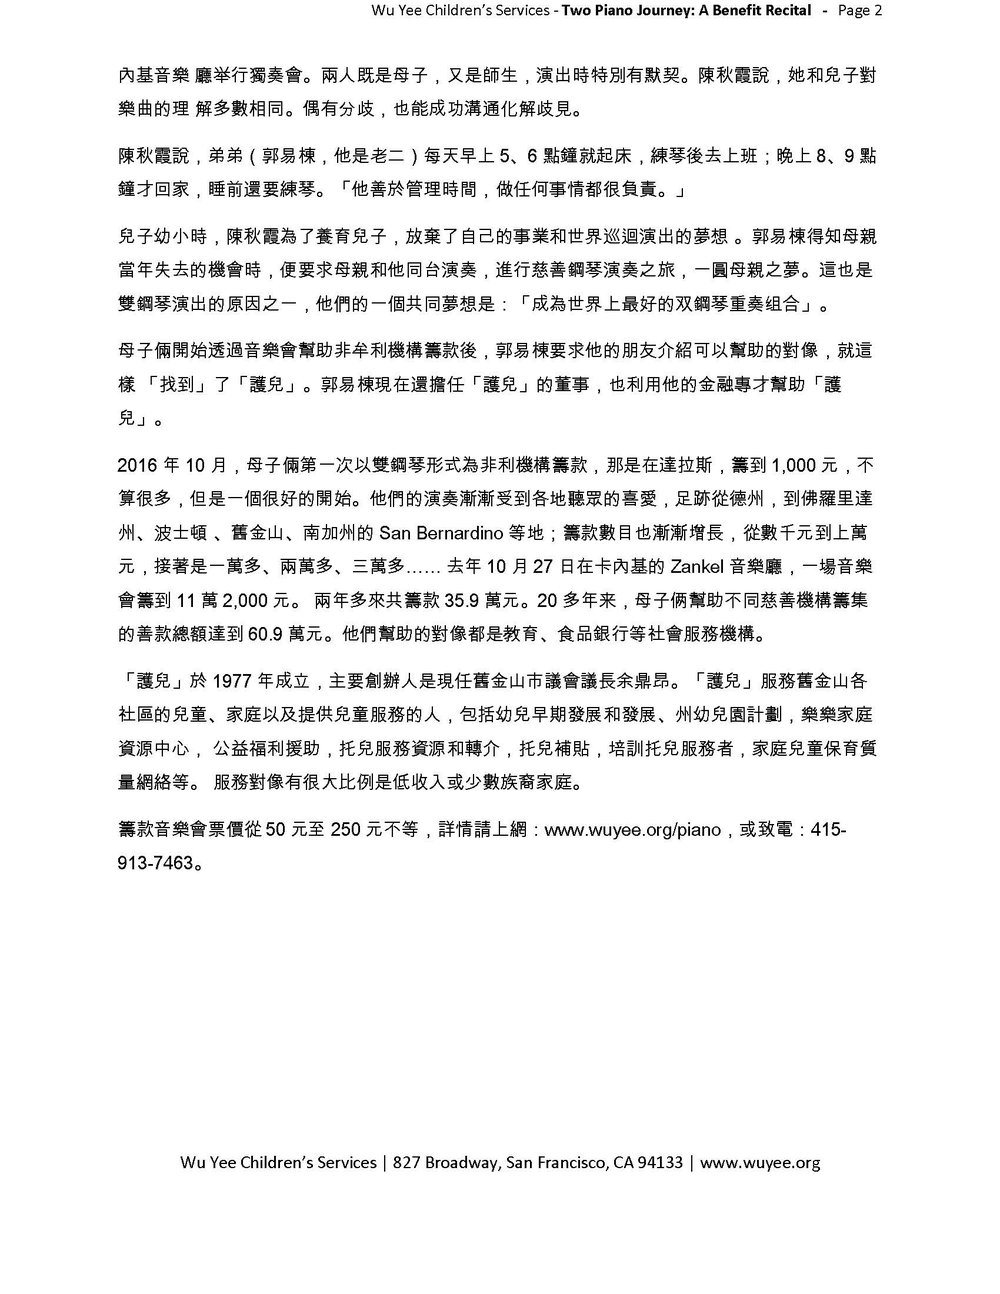 Wu Yee 2019 Piano Concert Press Release_Chinese (1)_Page_2.jpg